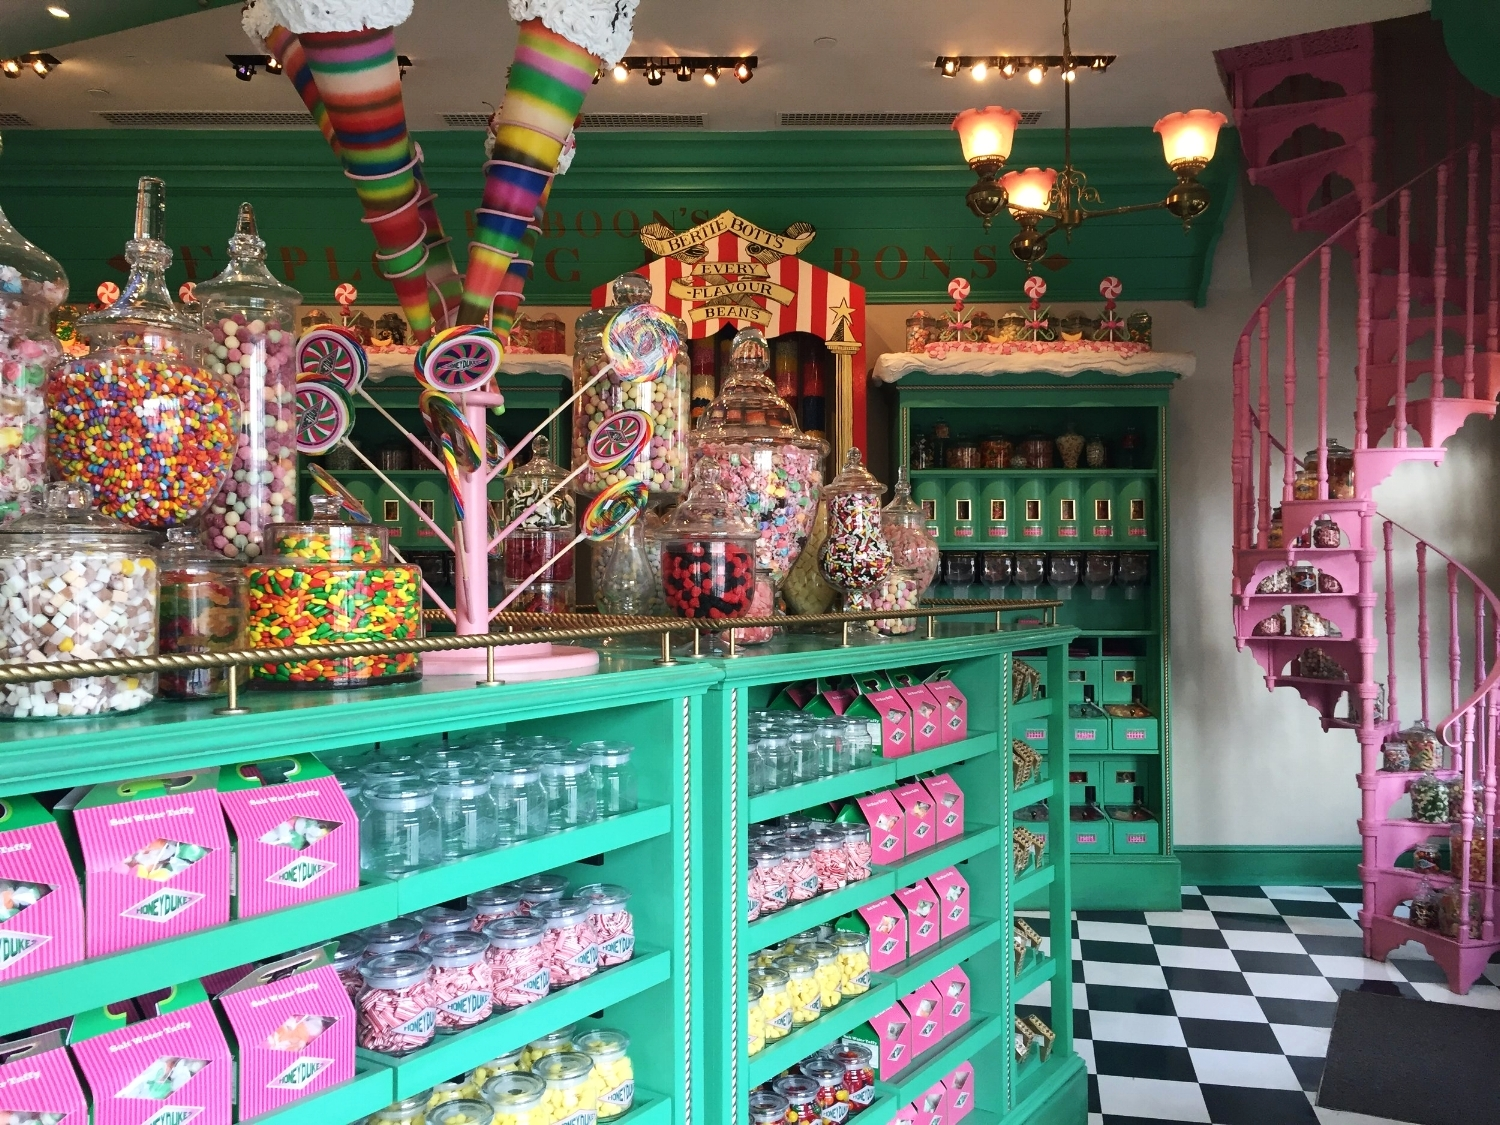 Honeydukes has peppermint green shelves and a cotton-candy pink spiral staircase.